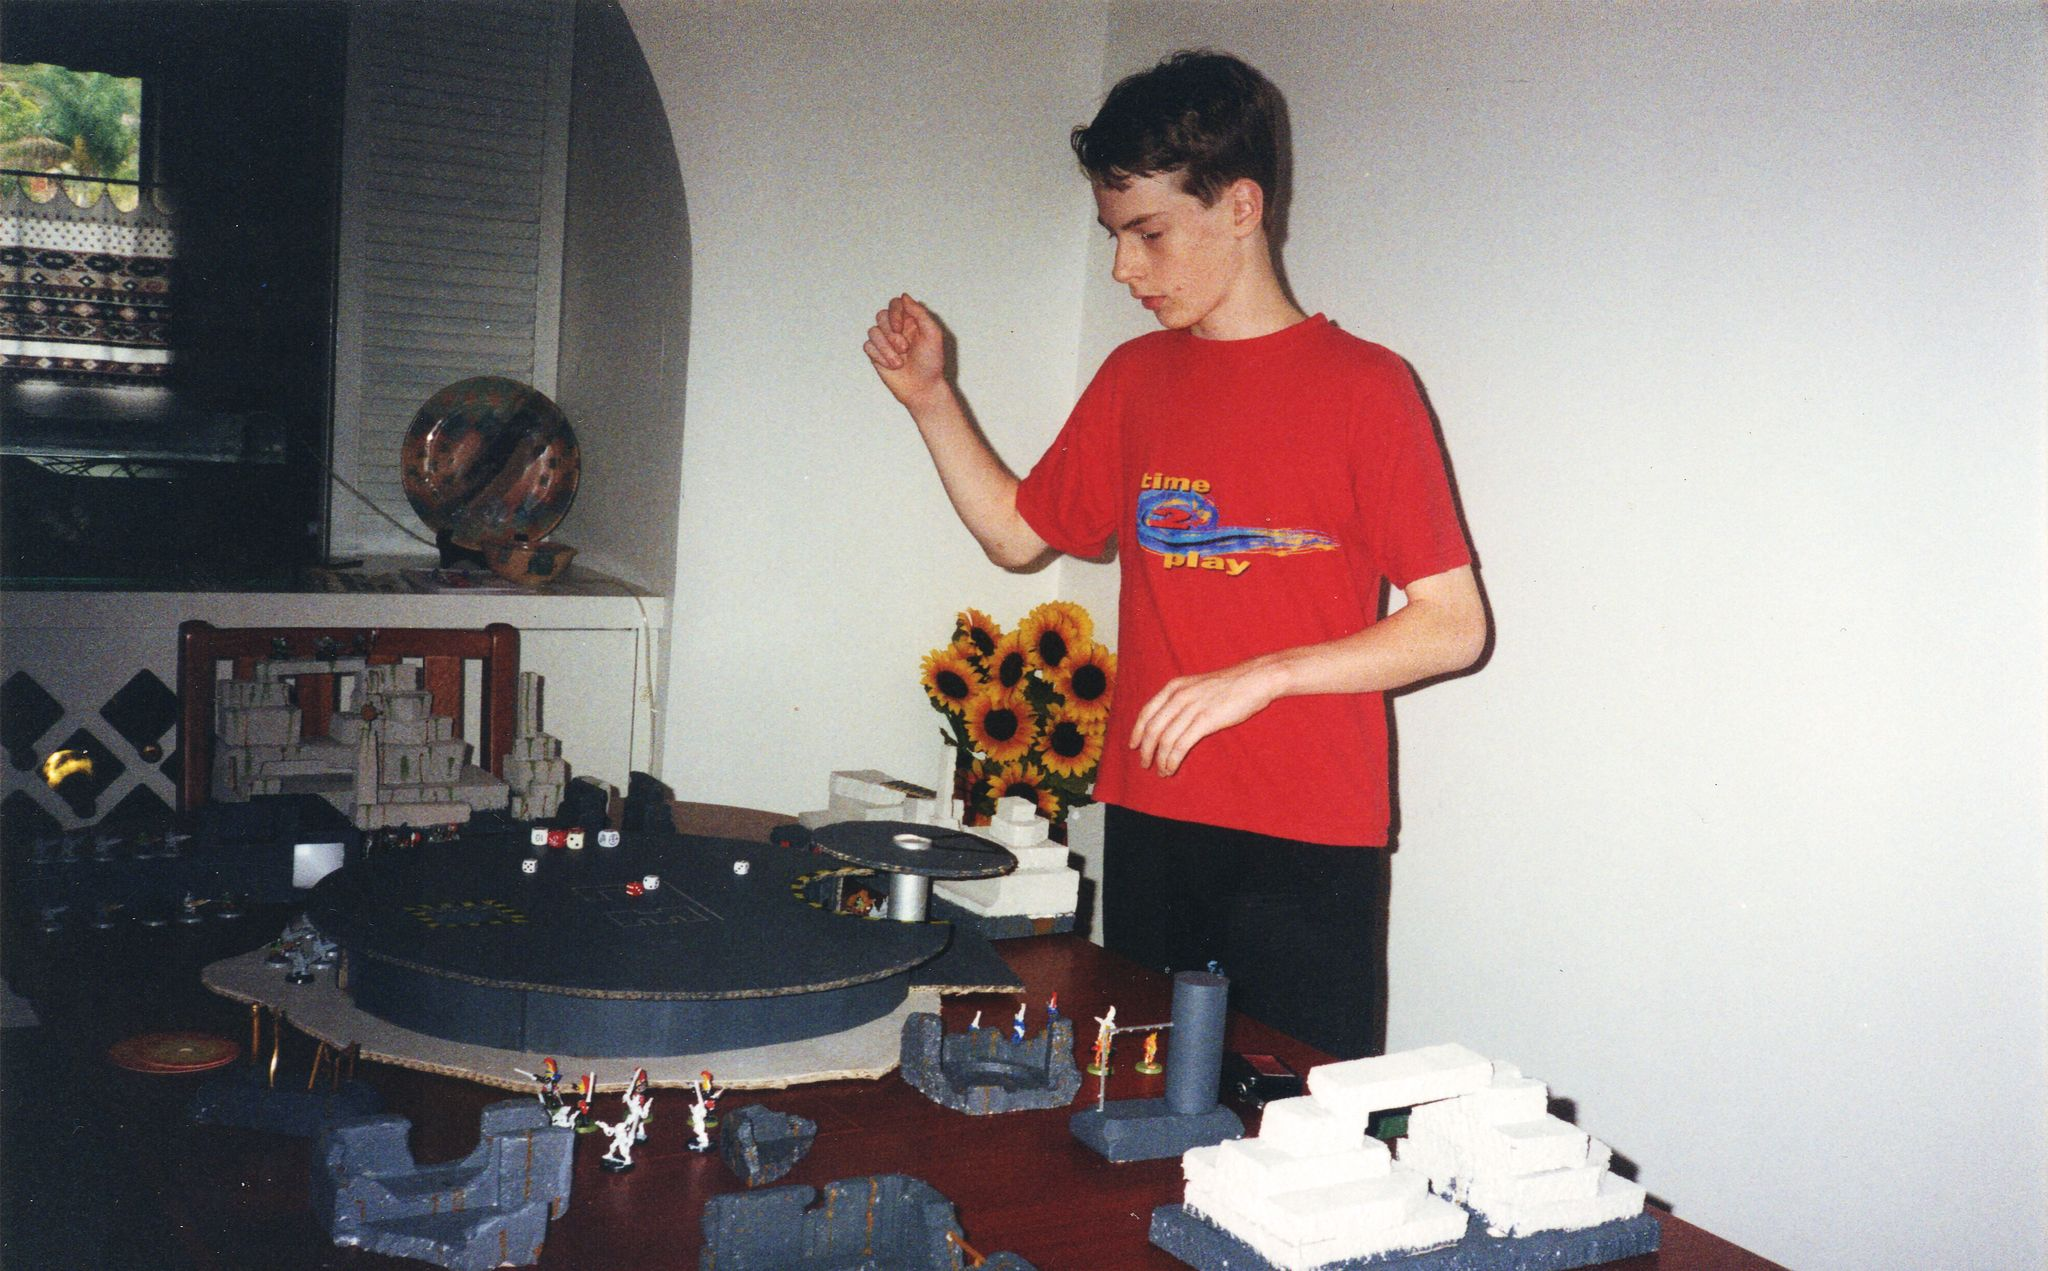 A photo of me, a just-thirteen year-old white boy with short brown hair and a red (!) t-shirt on, looking extremely serious and with my hand in the position that indicates I've probably just rolled some dice.